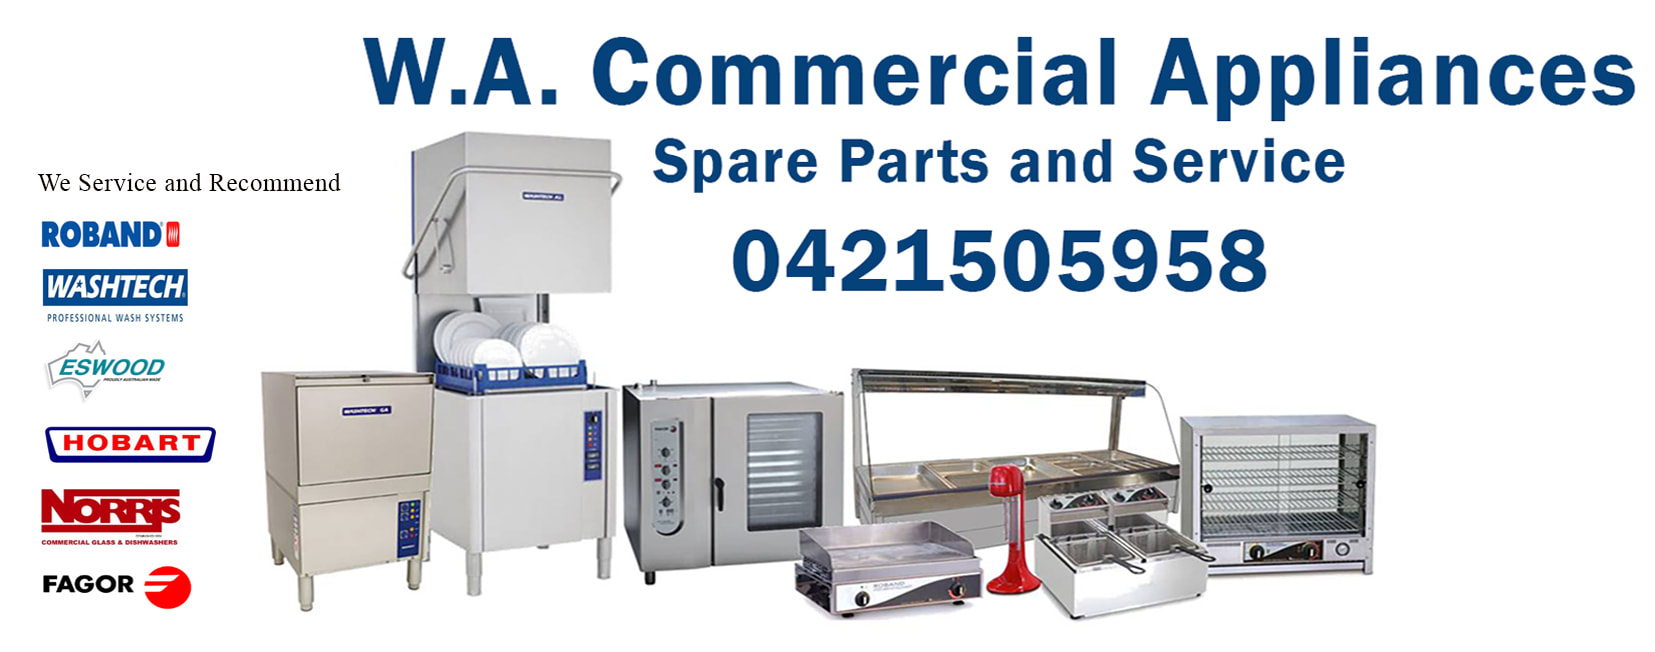 Reliable and Professional Catering Appliance Parts and Service. W.A. Commercial  Appliances